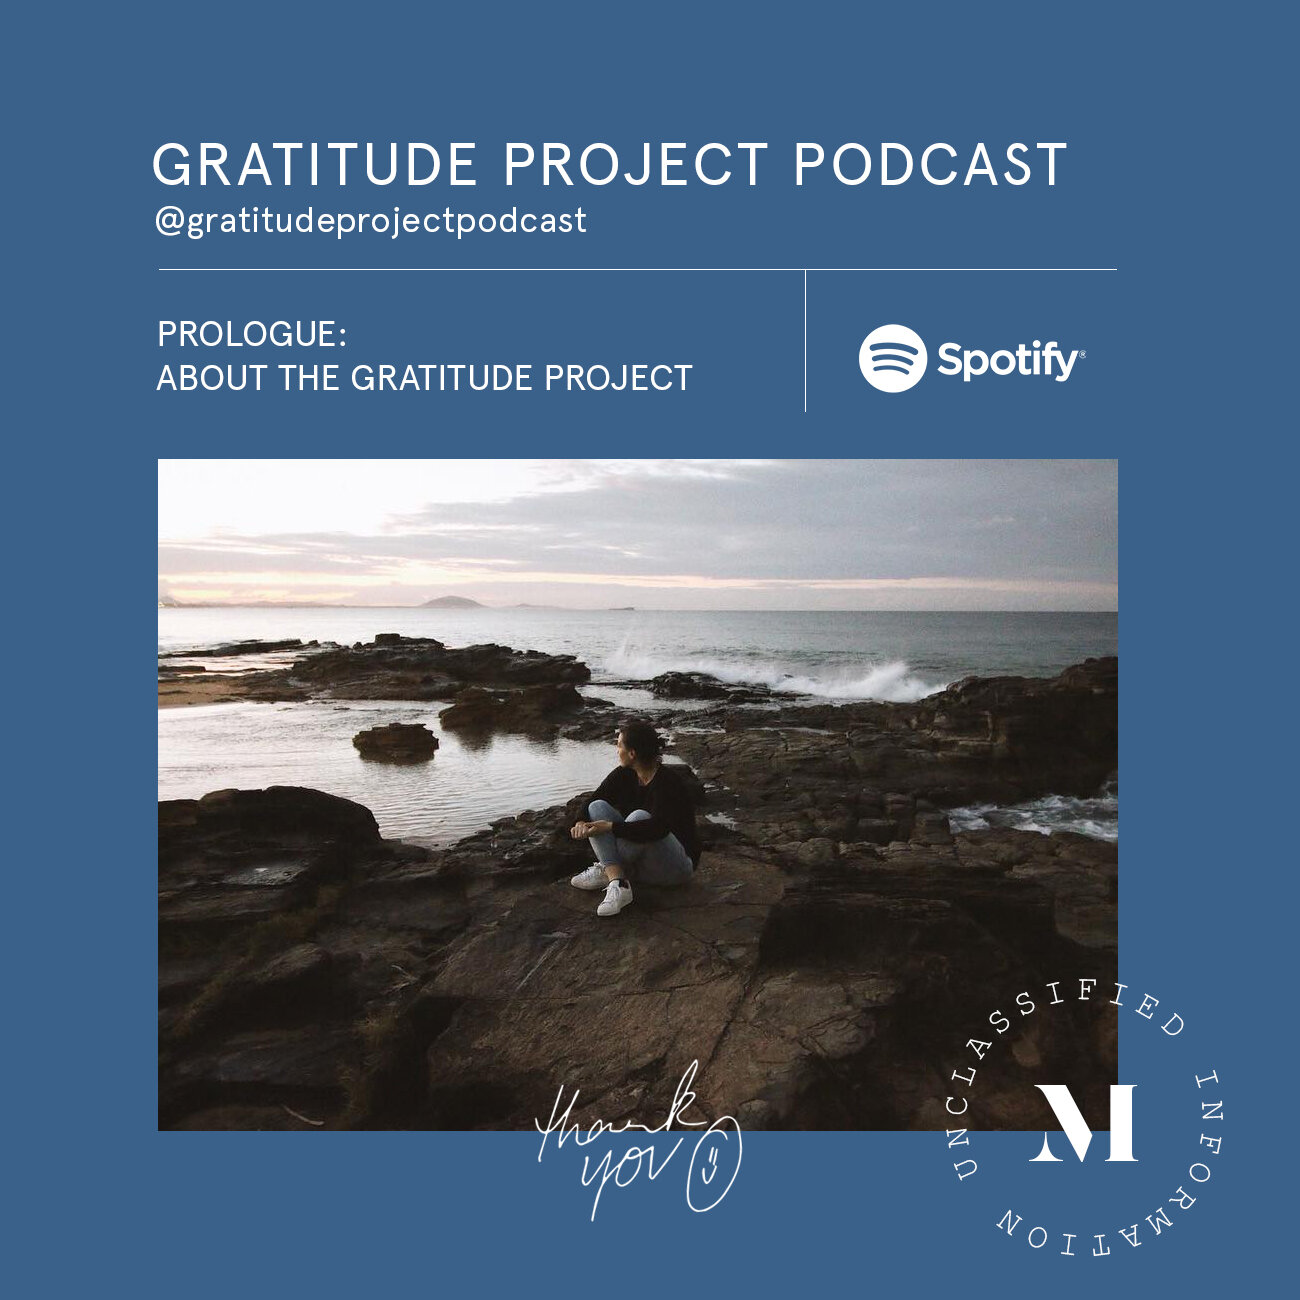 the-gratitude-project-podcast-prologue